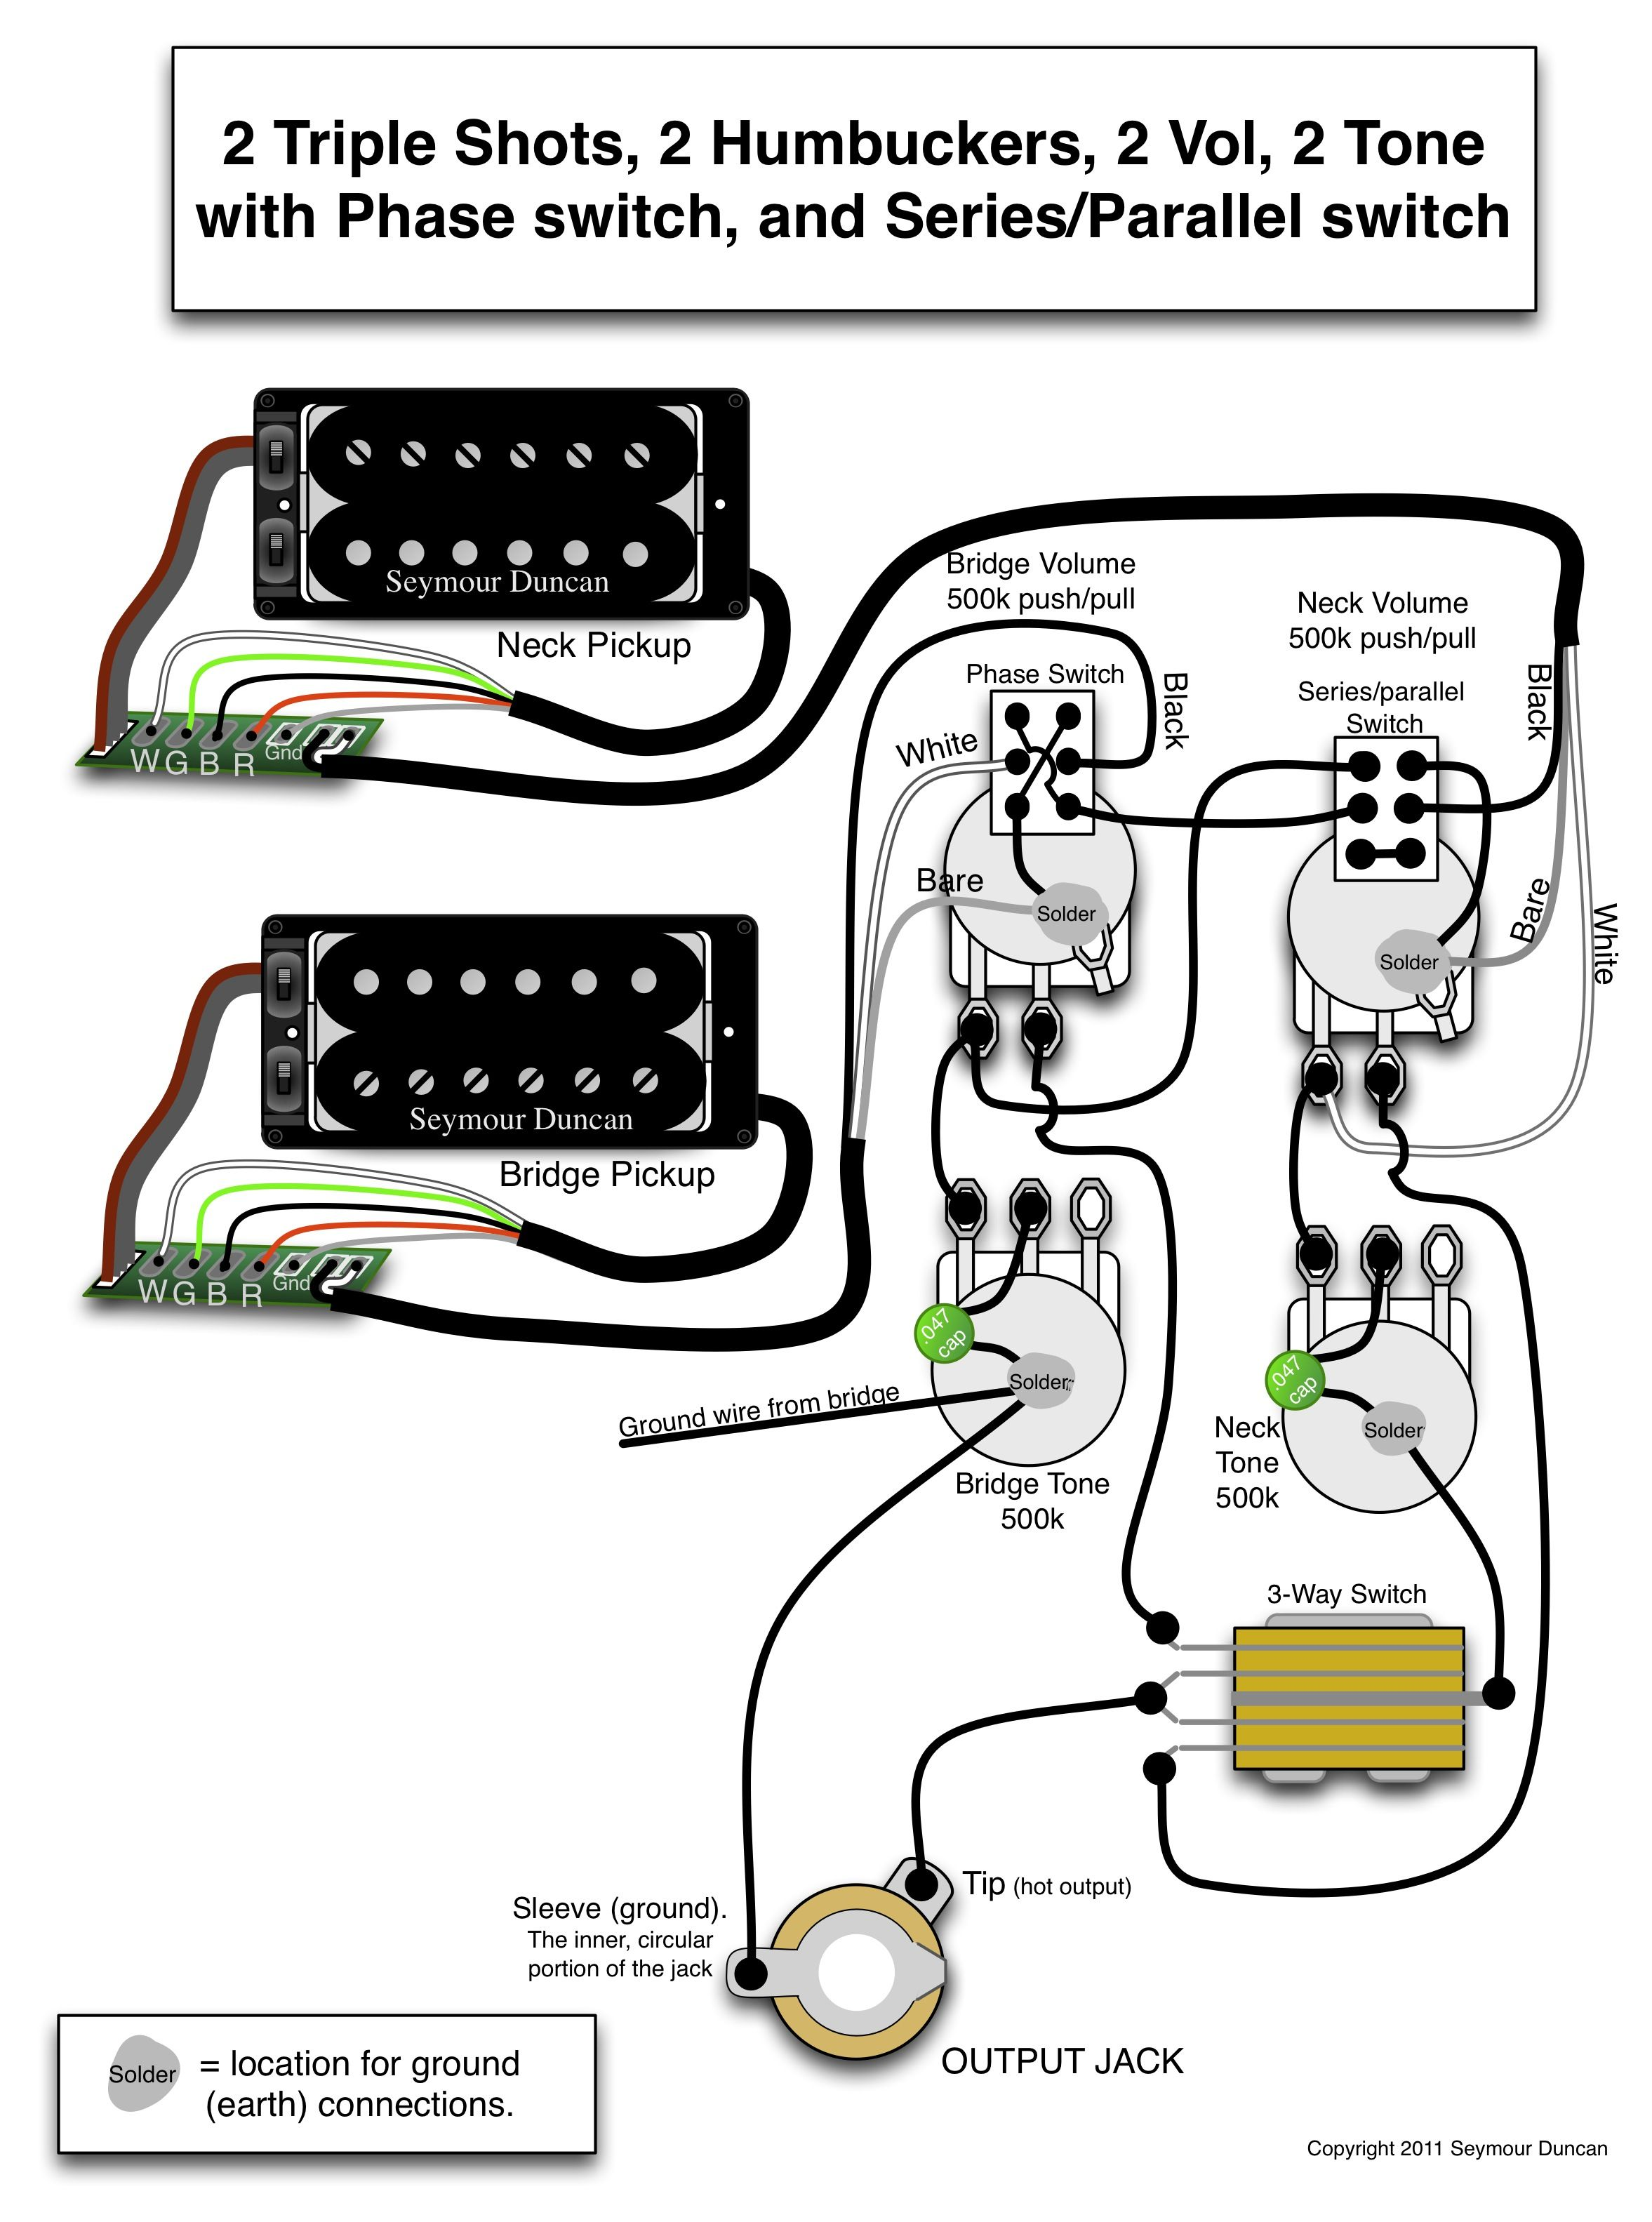 14dc4408abcf3c075a00cd280c1ea7ec seymour duncan wiring diagram 2 triple shots, 2 humbuckers, 2 les paul custom wiring diagram at gsmx.co